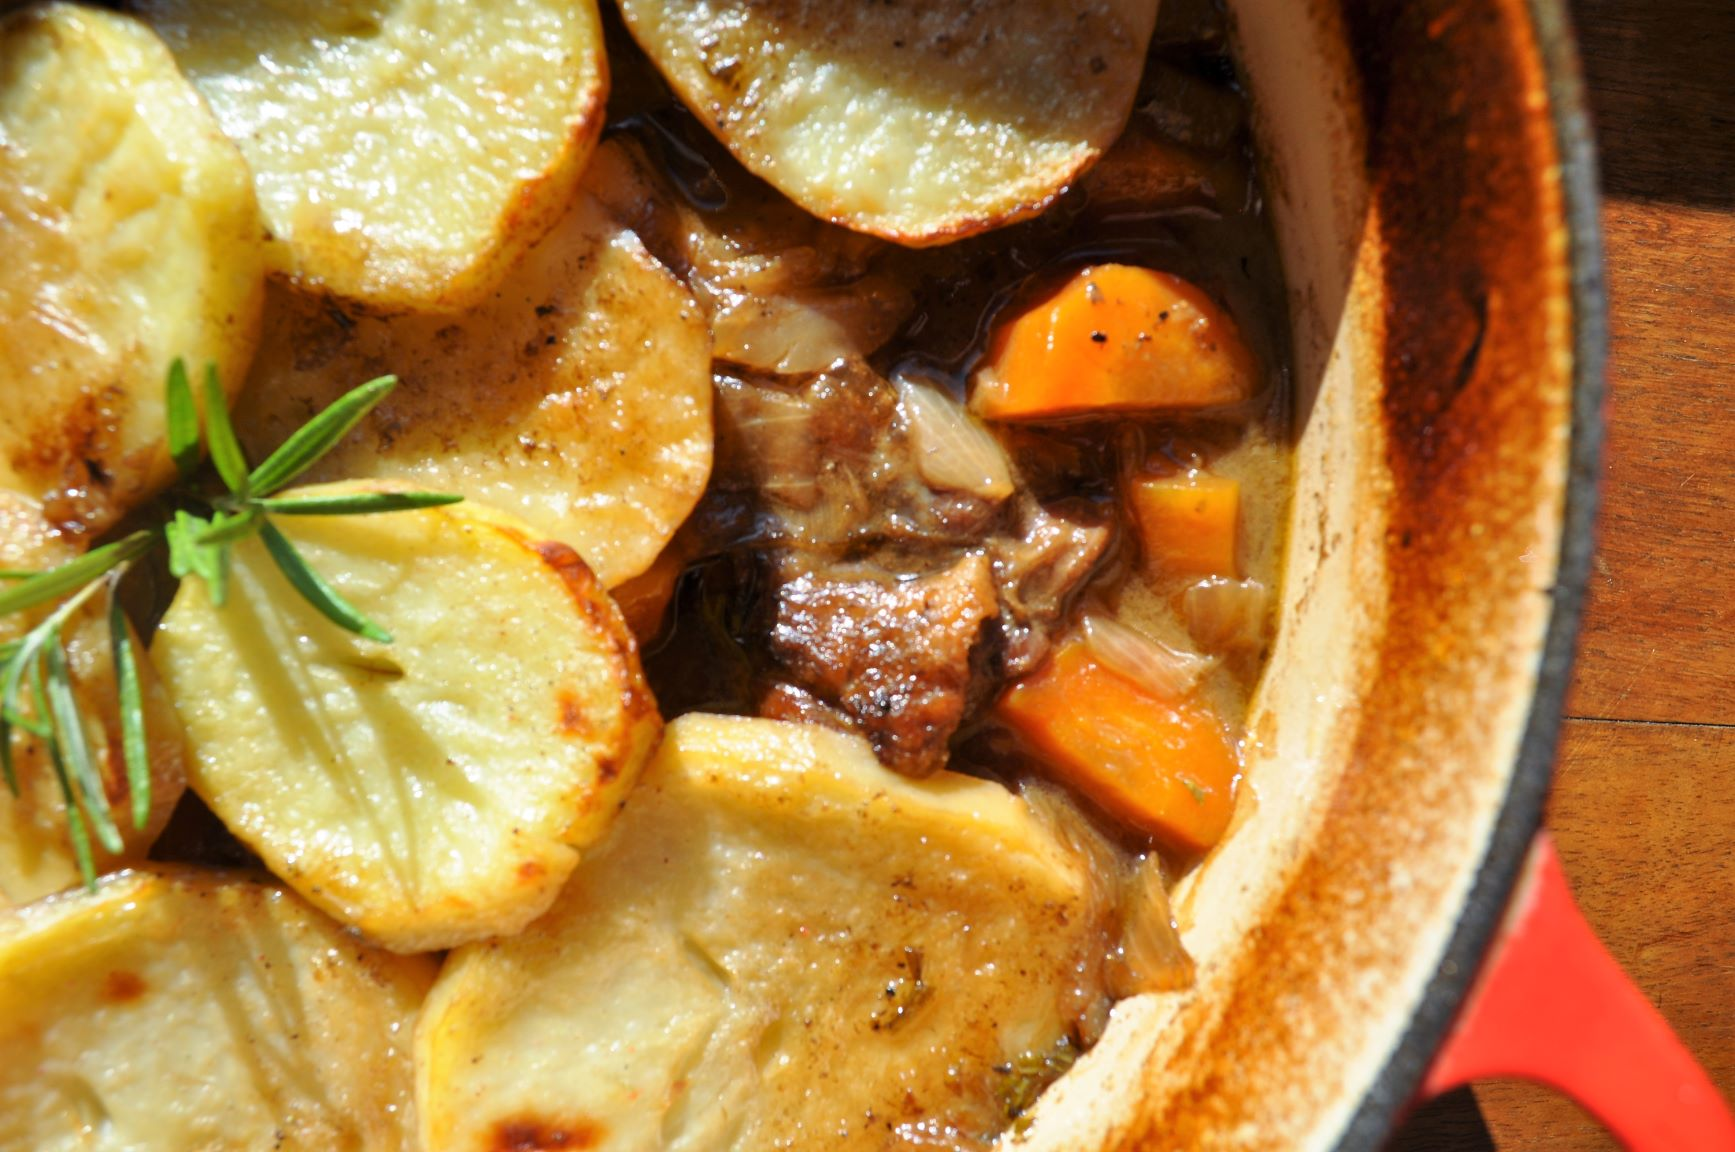 Irish stew with goat